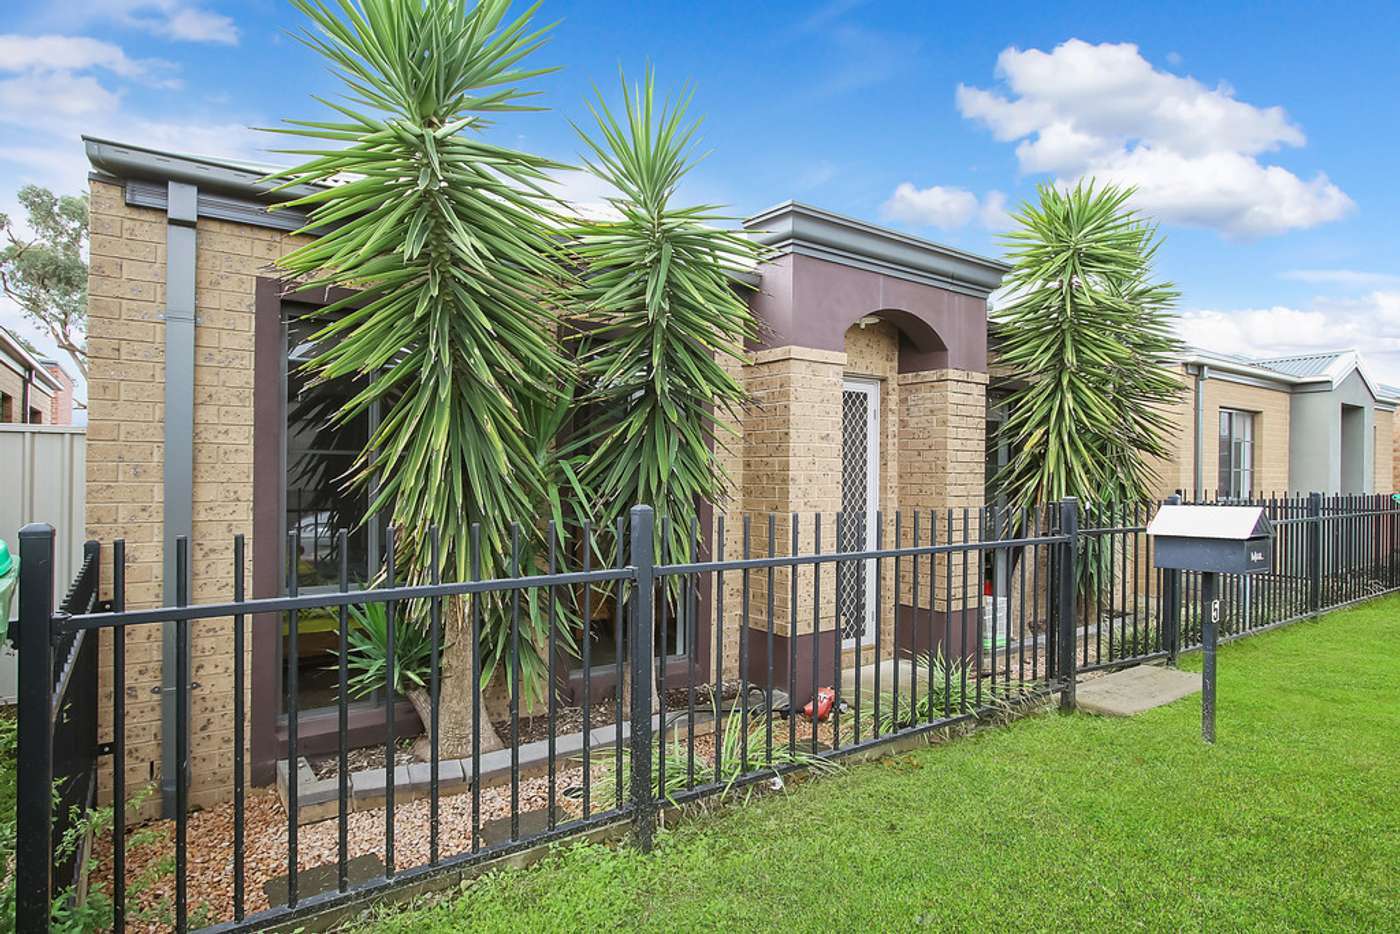 Main view of Homely house listing, 5 Macquarie Road, Wodonga VIC 3690